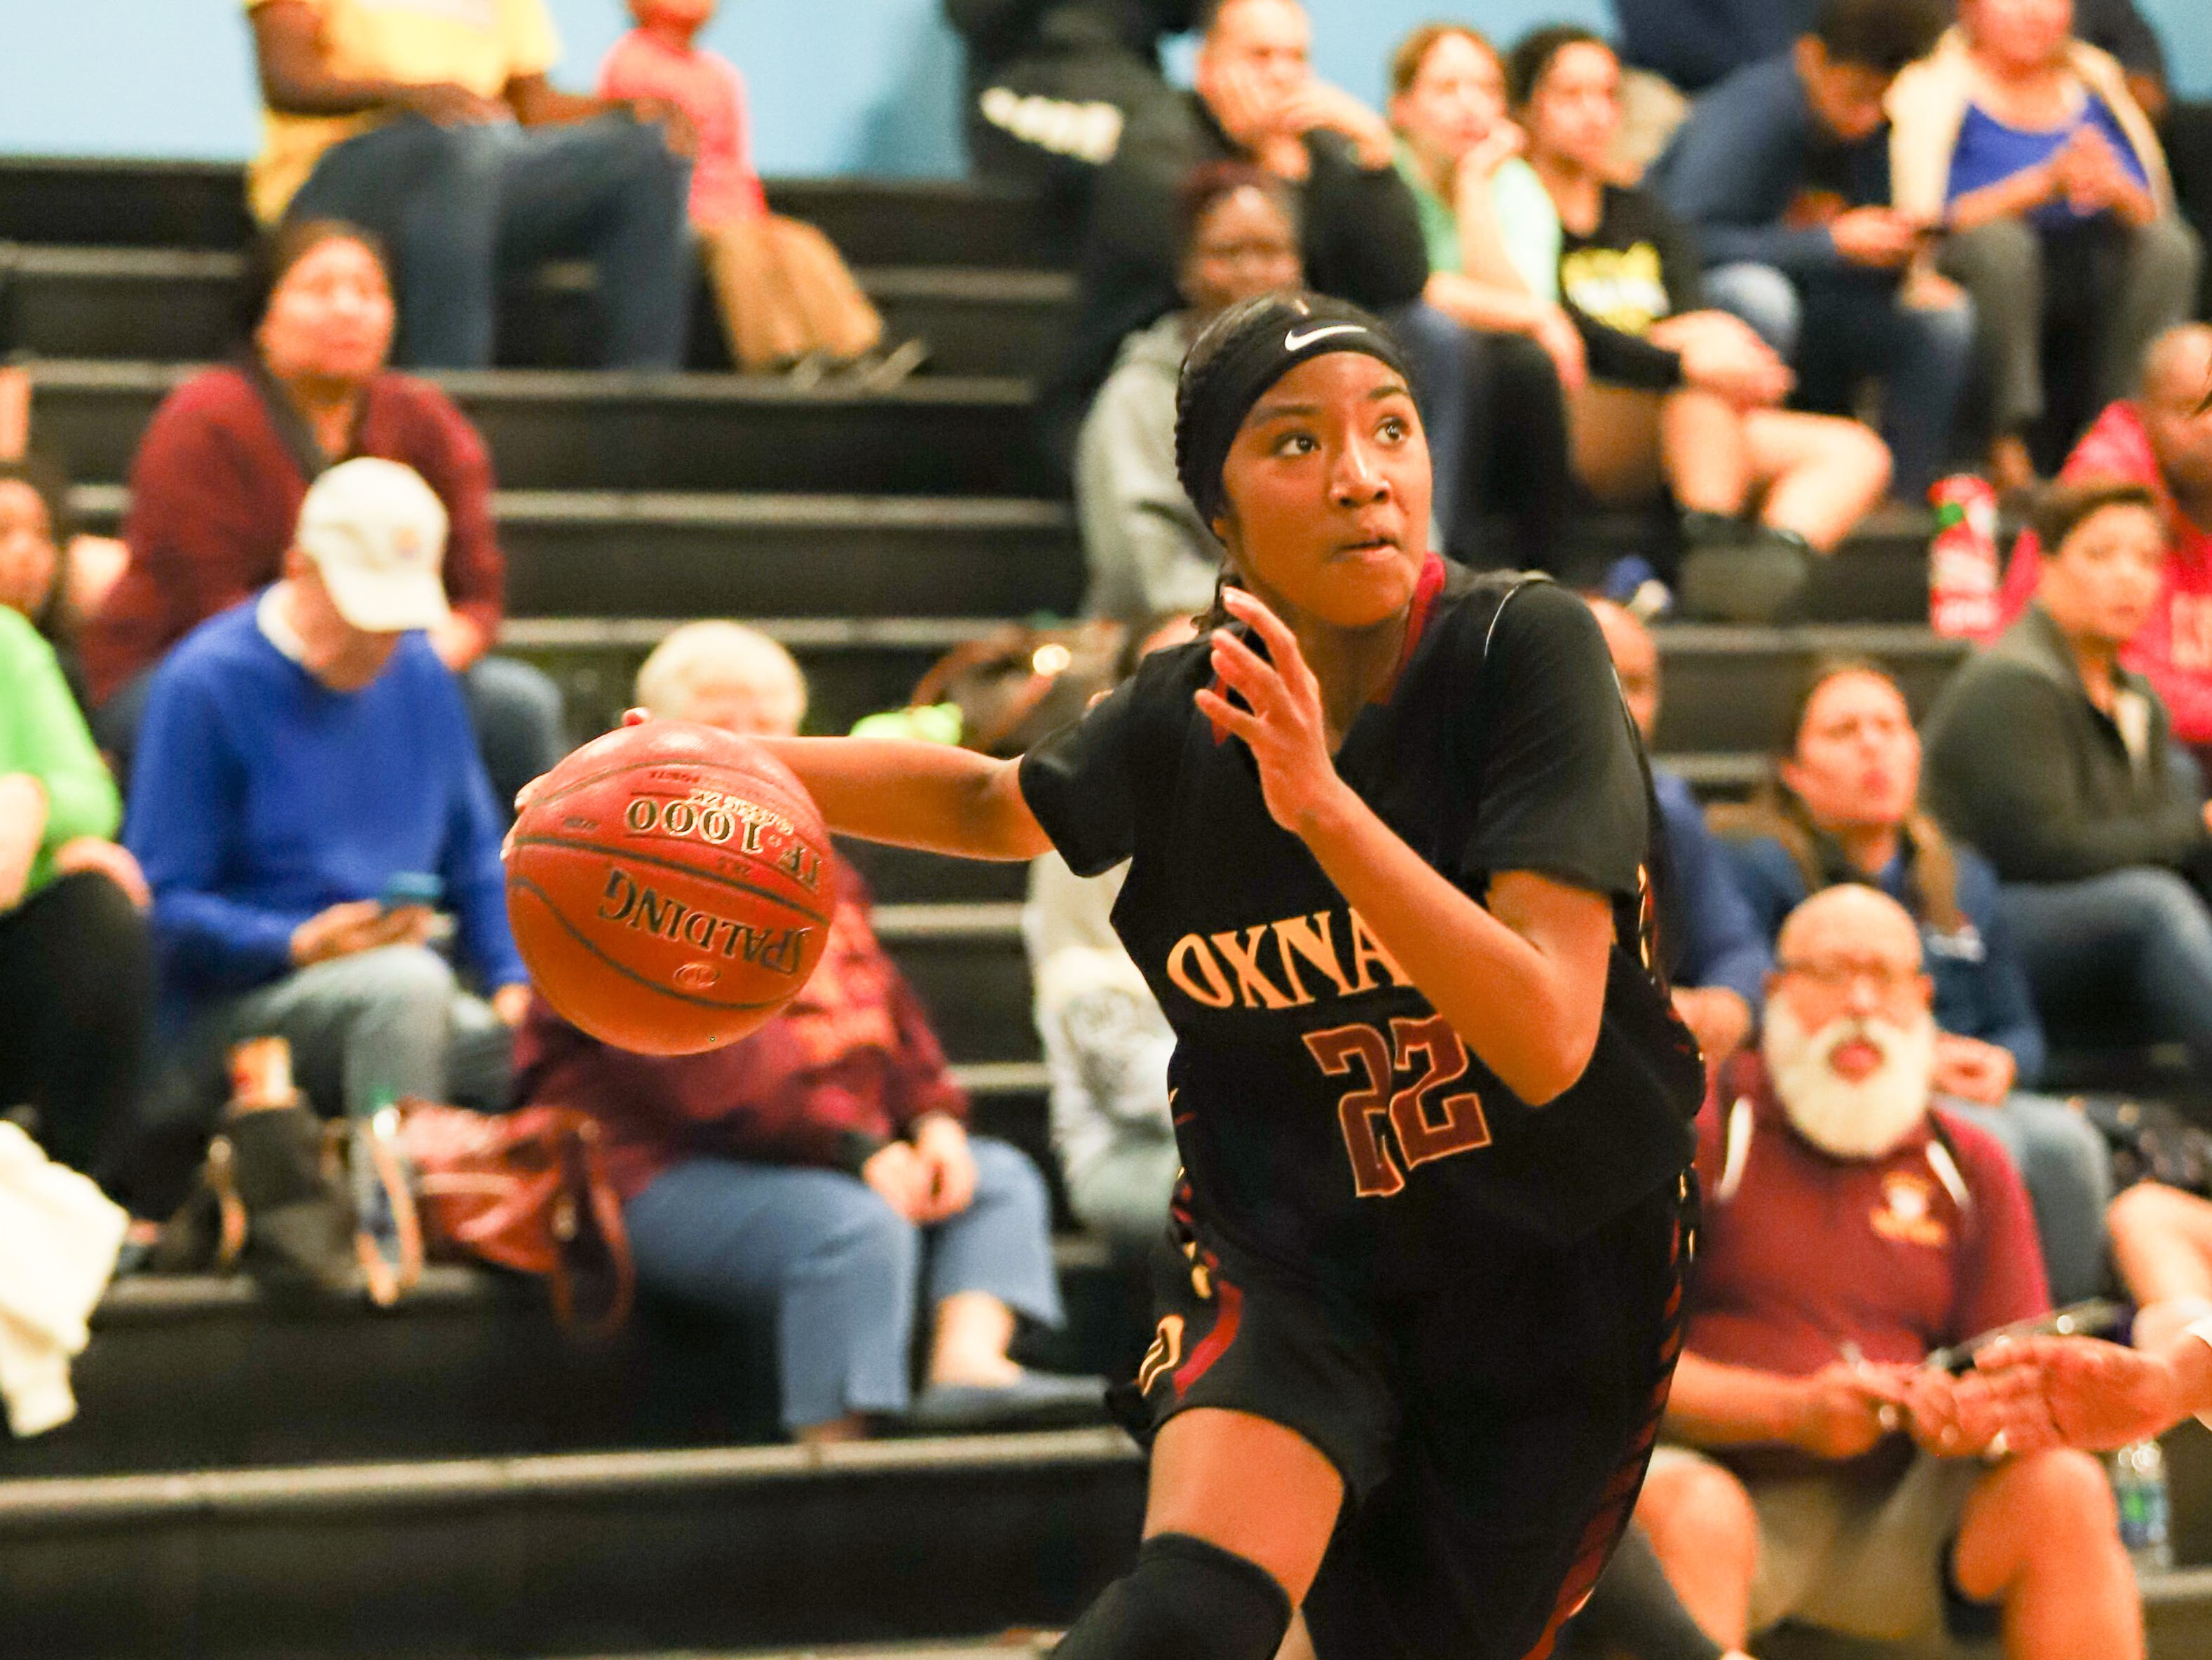 Myesha Lumas, a 5-foot-7 junior, is averaging 12.8 points for the Oxnard High girls basketball team, which clinched the Pacific View League title on Thursday and is ranked No. 3 in CIF-Southern Section Division 3A.